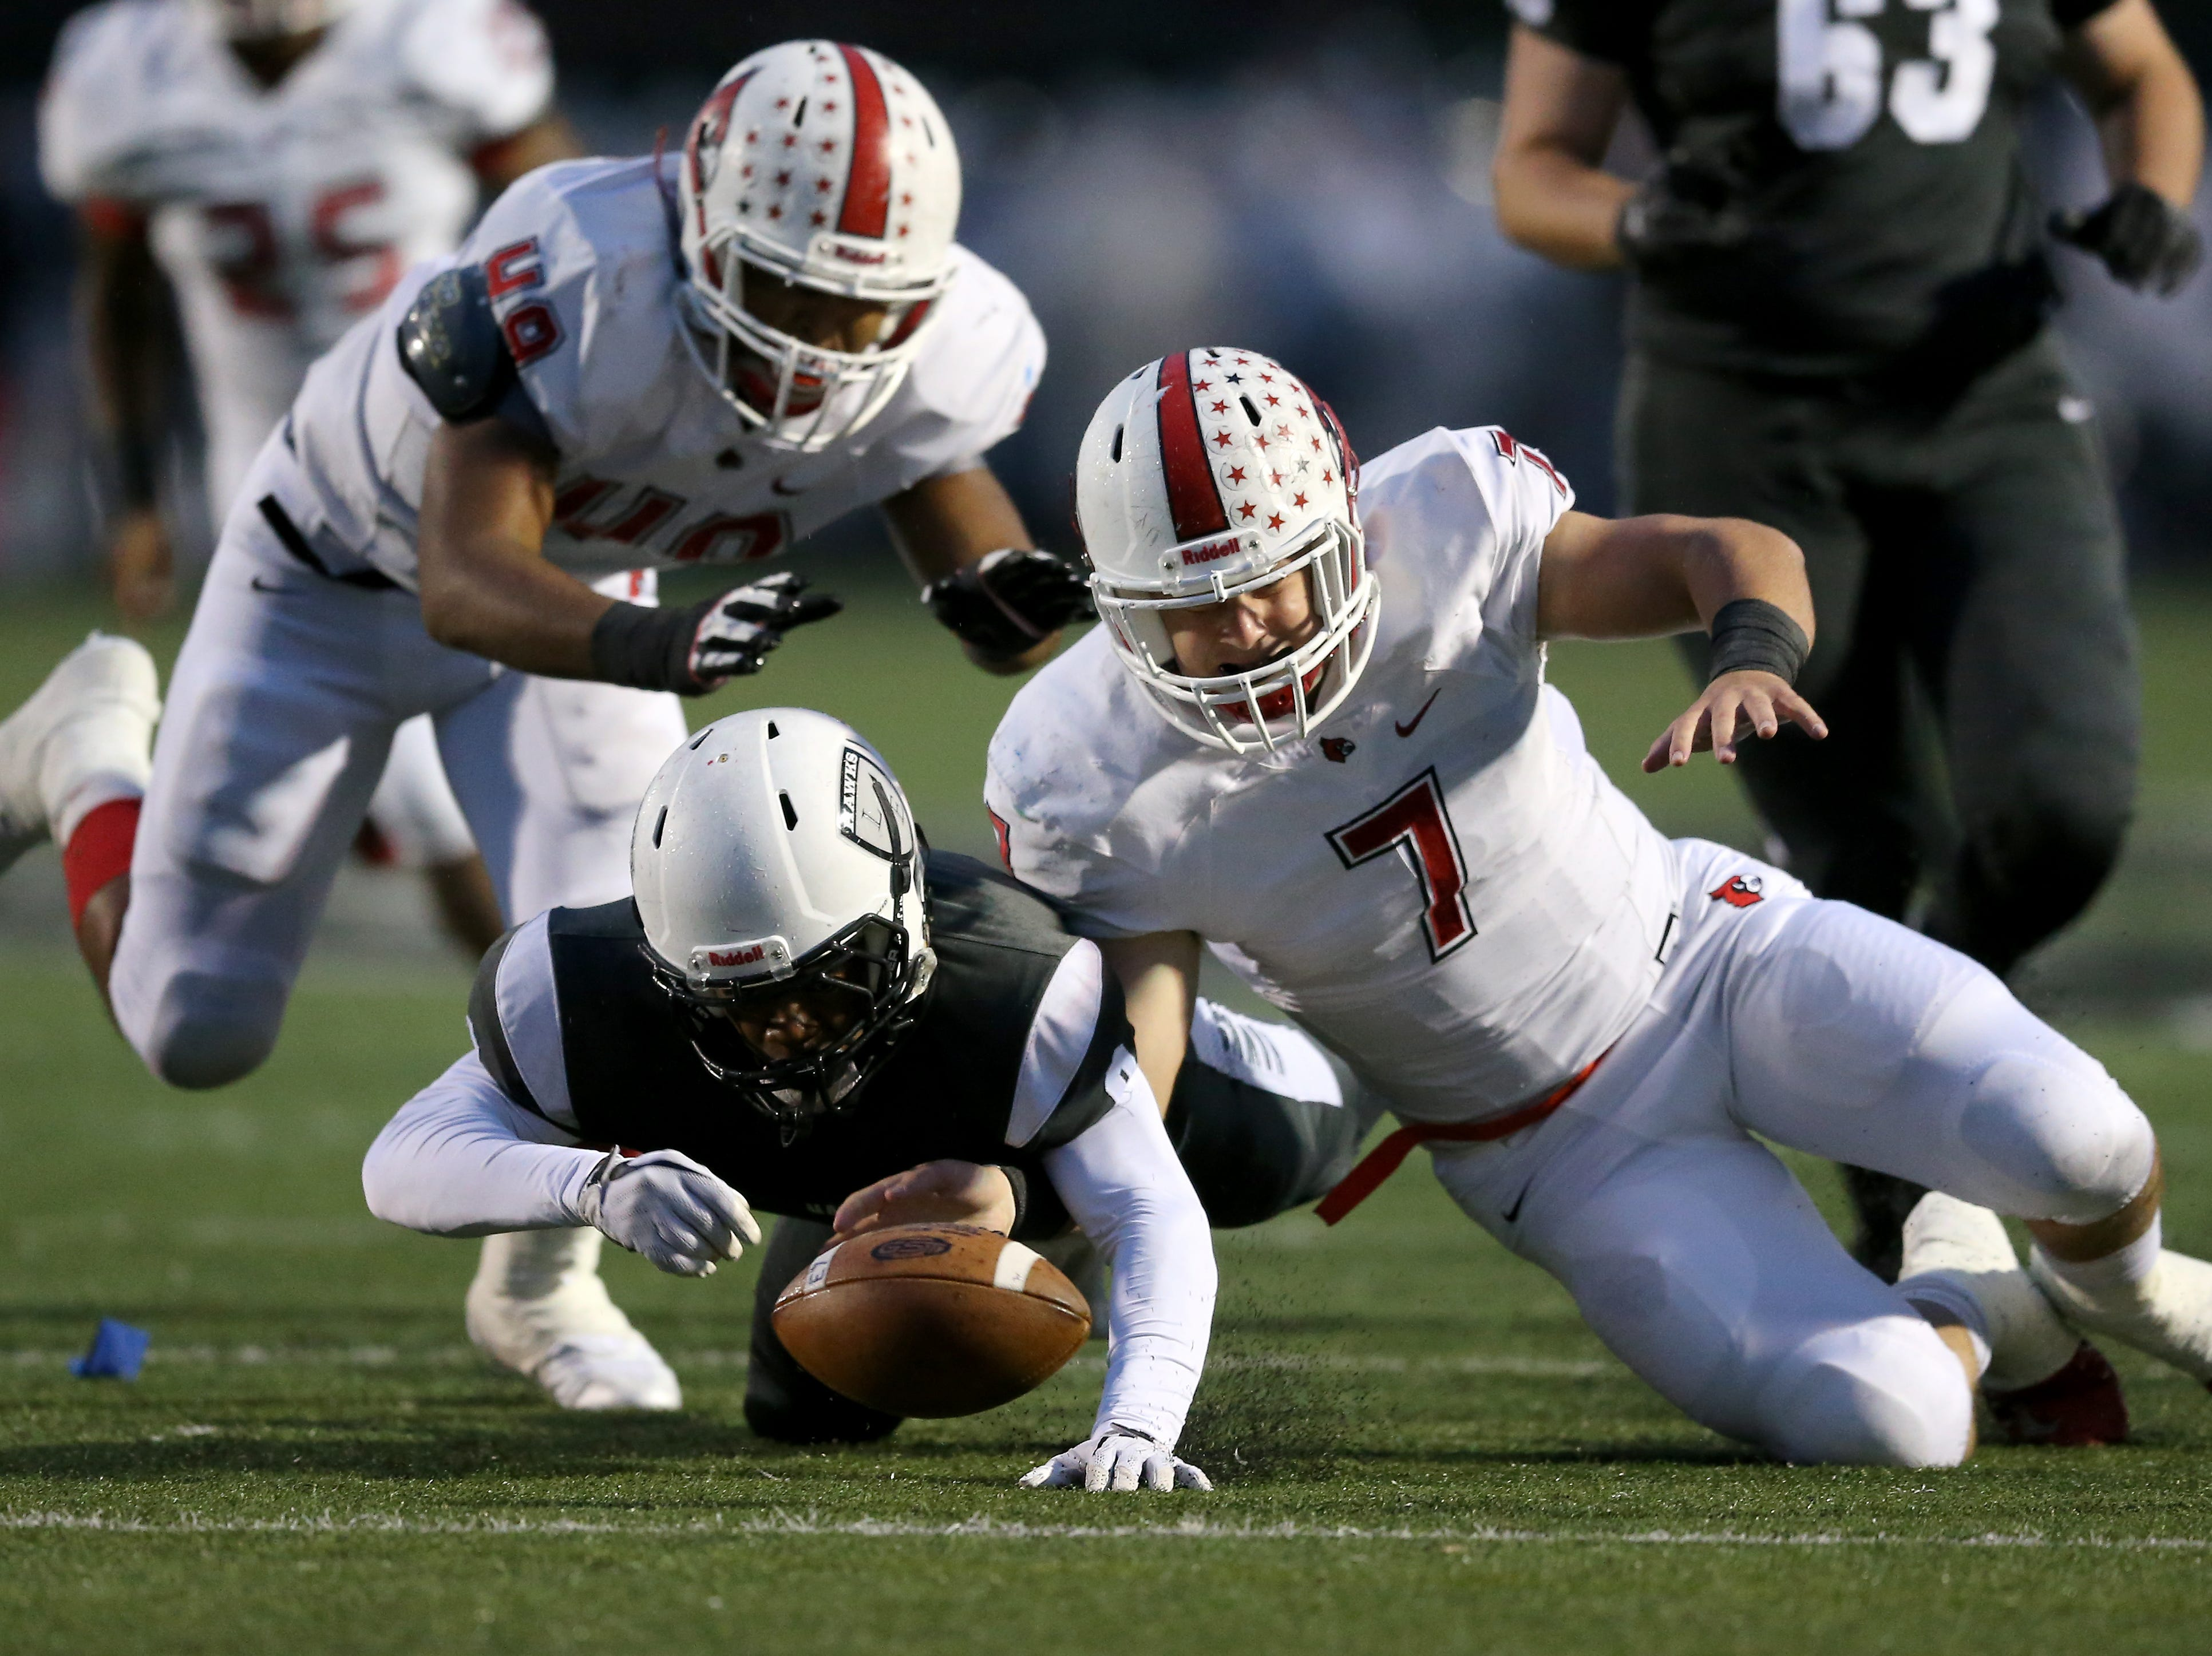 Lakota East Thunderhawks running back Donny Wilkinson (8), left, tries to recover a fumble as Colerain Cardinals linebacker Luke Bolden (7) dives for it in the first quarter during a high school football game between the Colerain Cardinals and the Lakota East Thunderhawks, Friday, Oct. 12, 2018, at Lakota East High School in Liberty Township, Ohio.